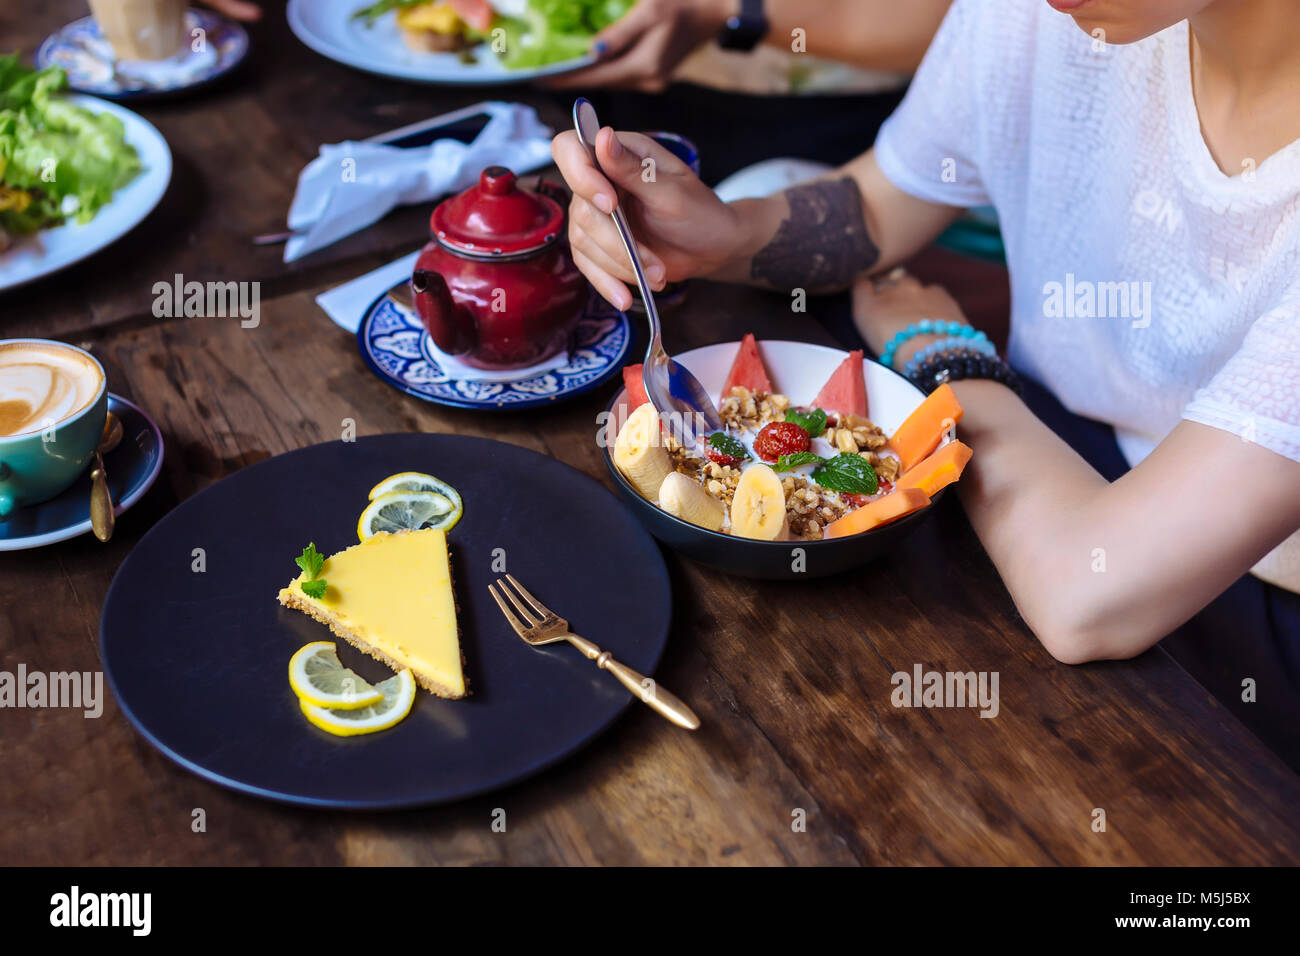 Woman having a healthy meal in a cafe - Stock Image